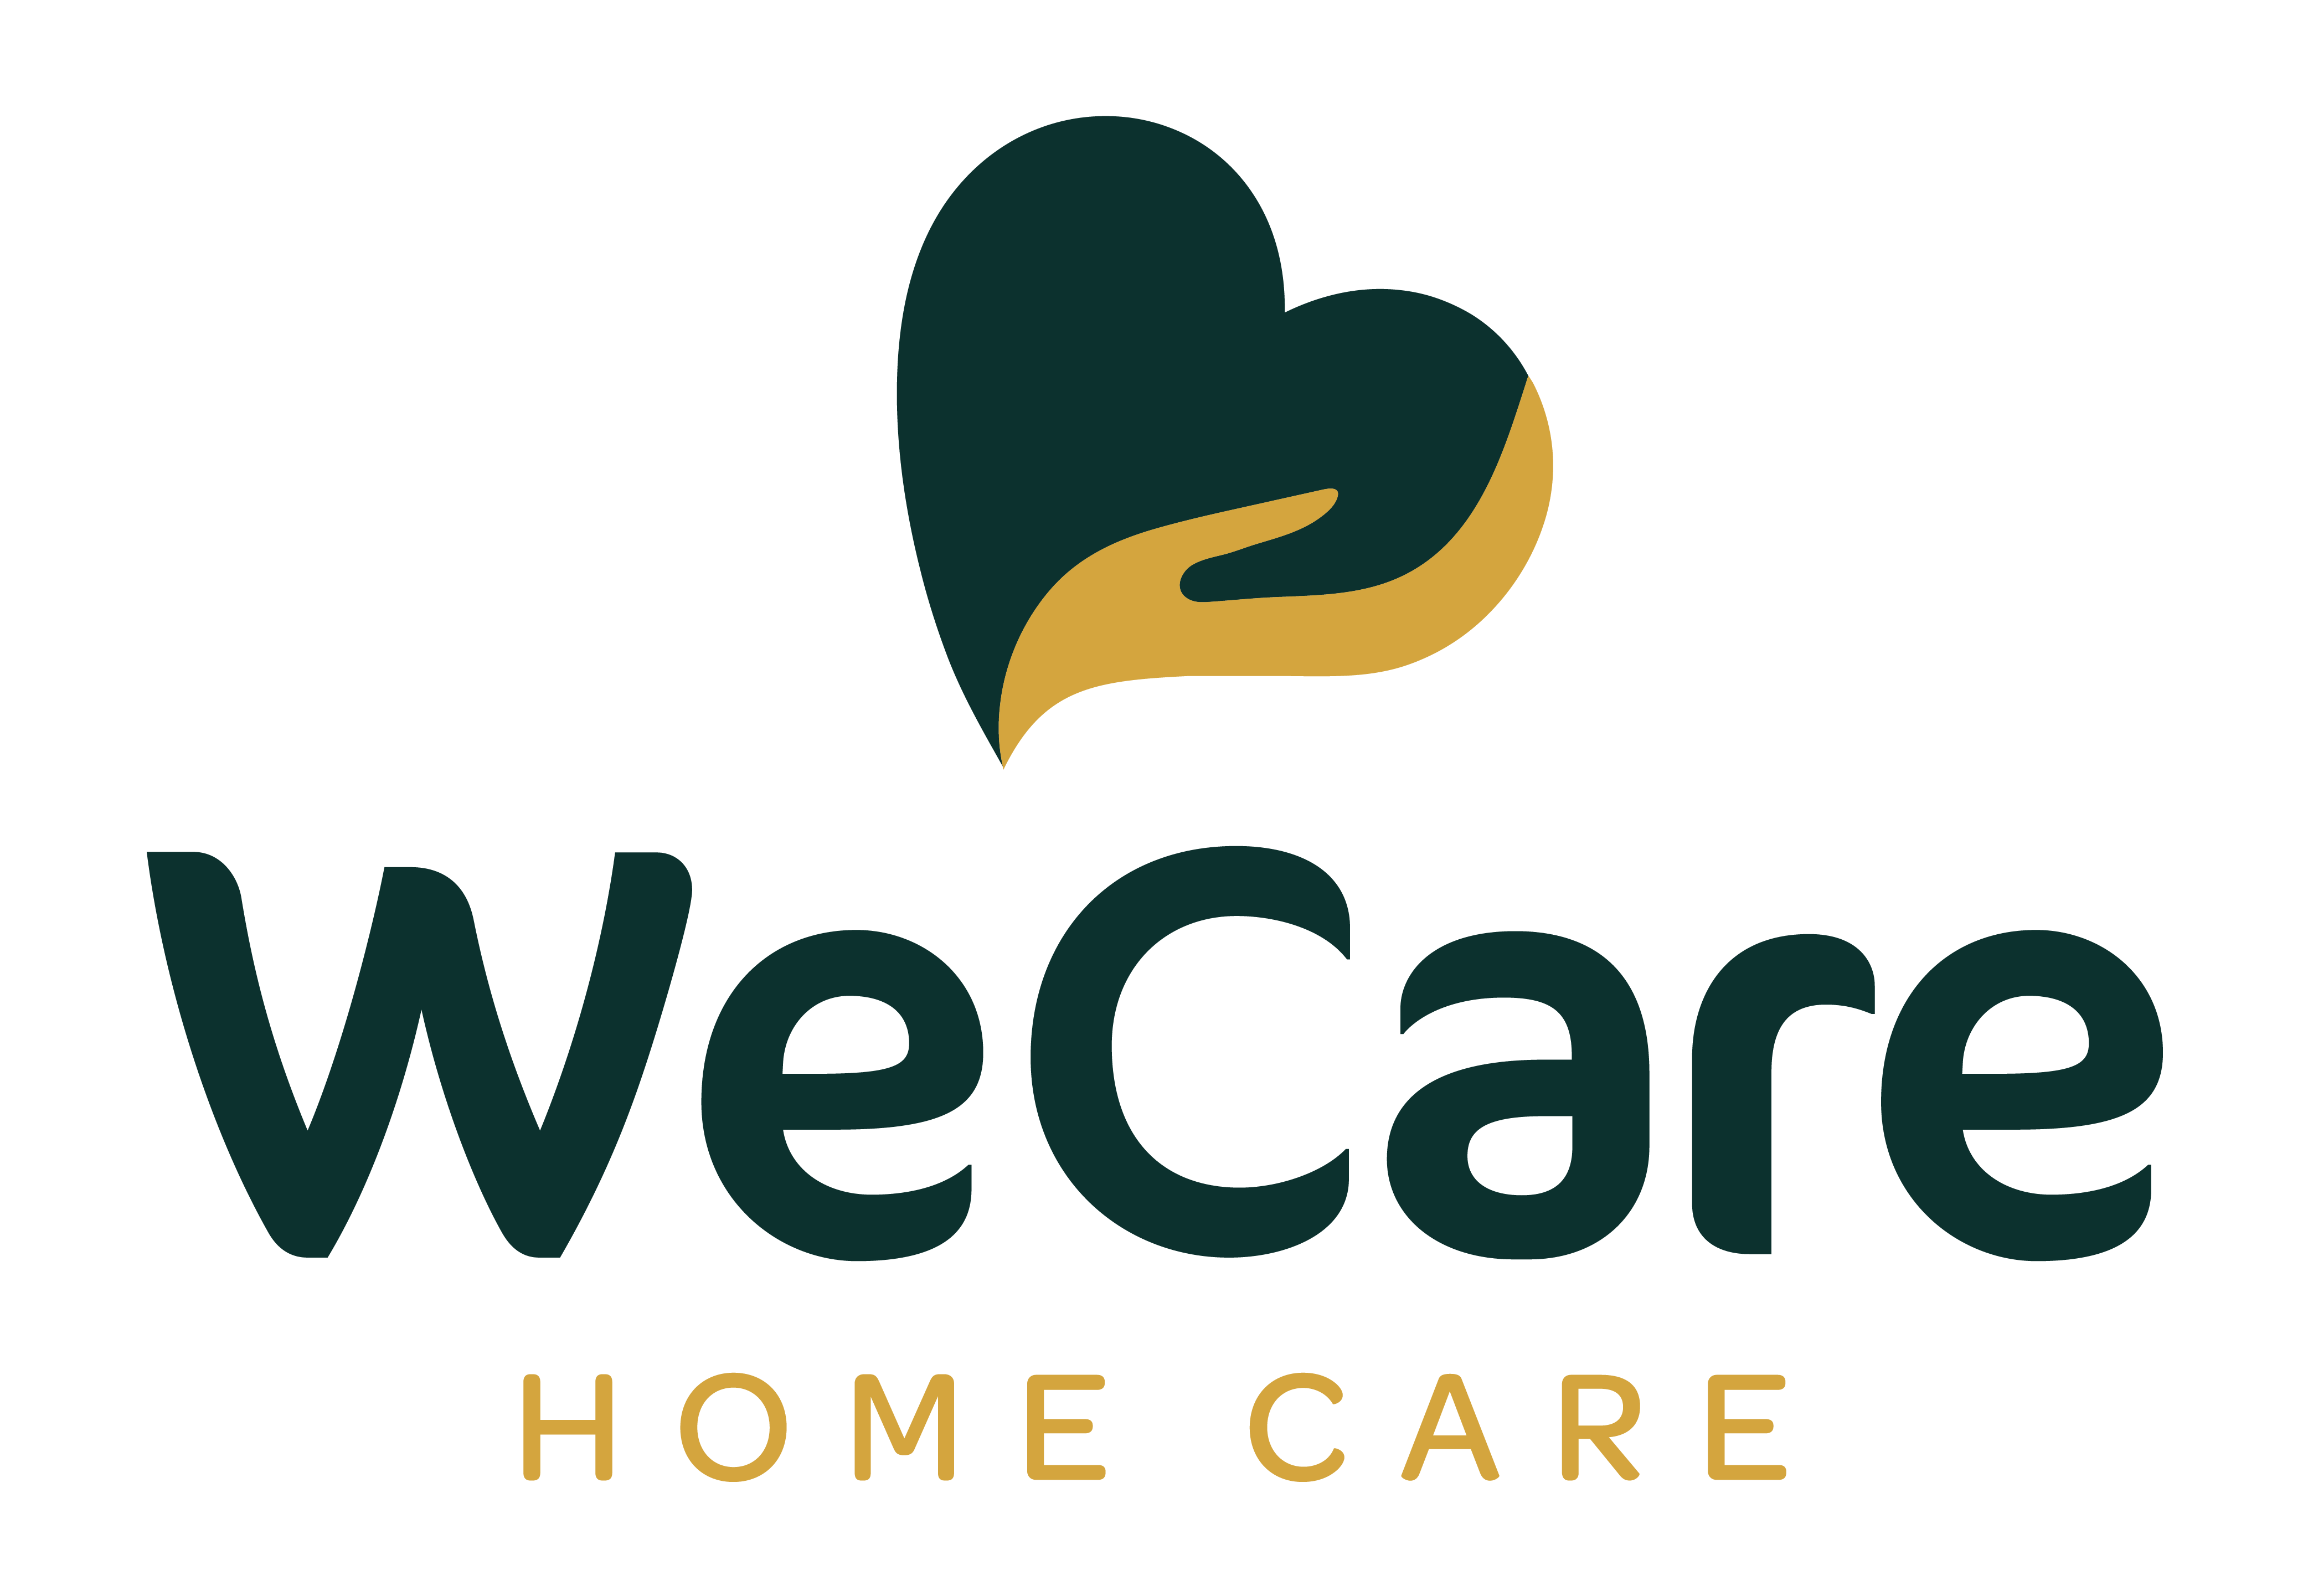 We Care Home Care